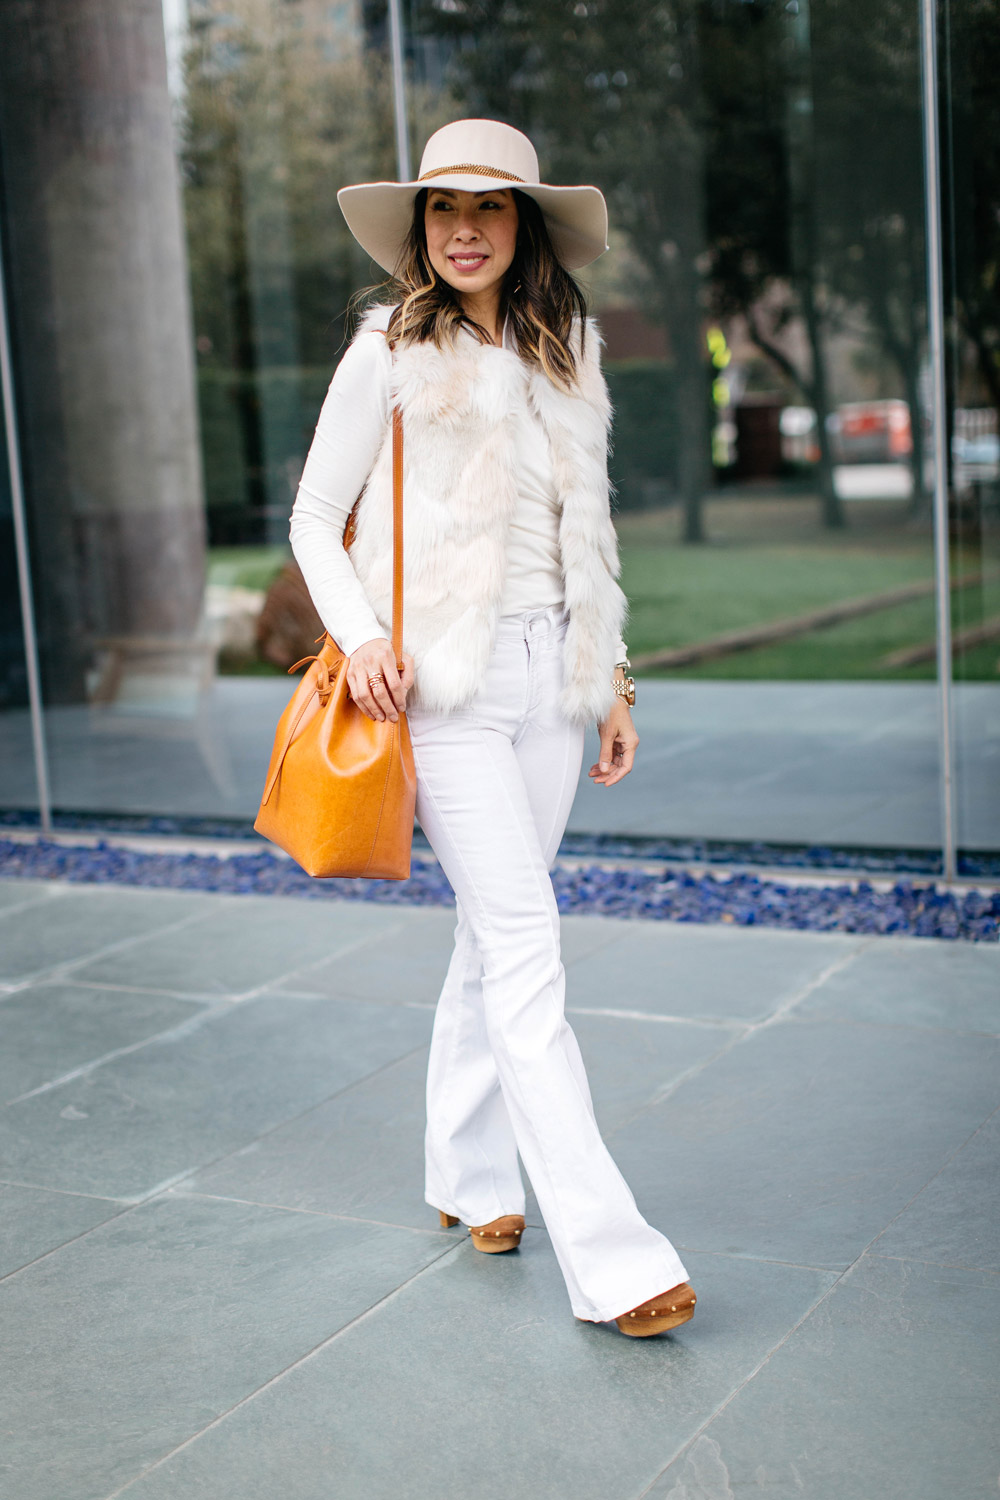 winter white outfit with flare jeans and hat, mansur gavriel bucket bag cammello